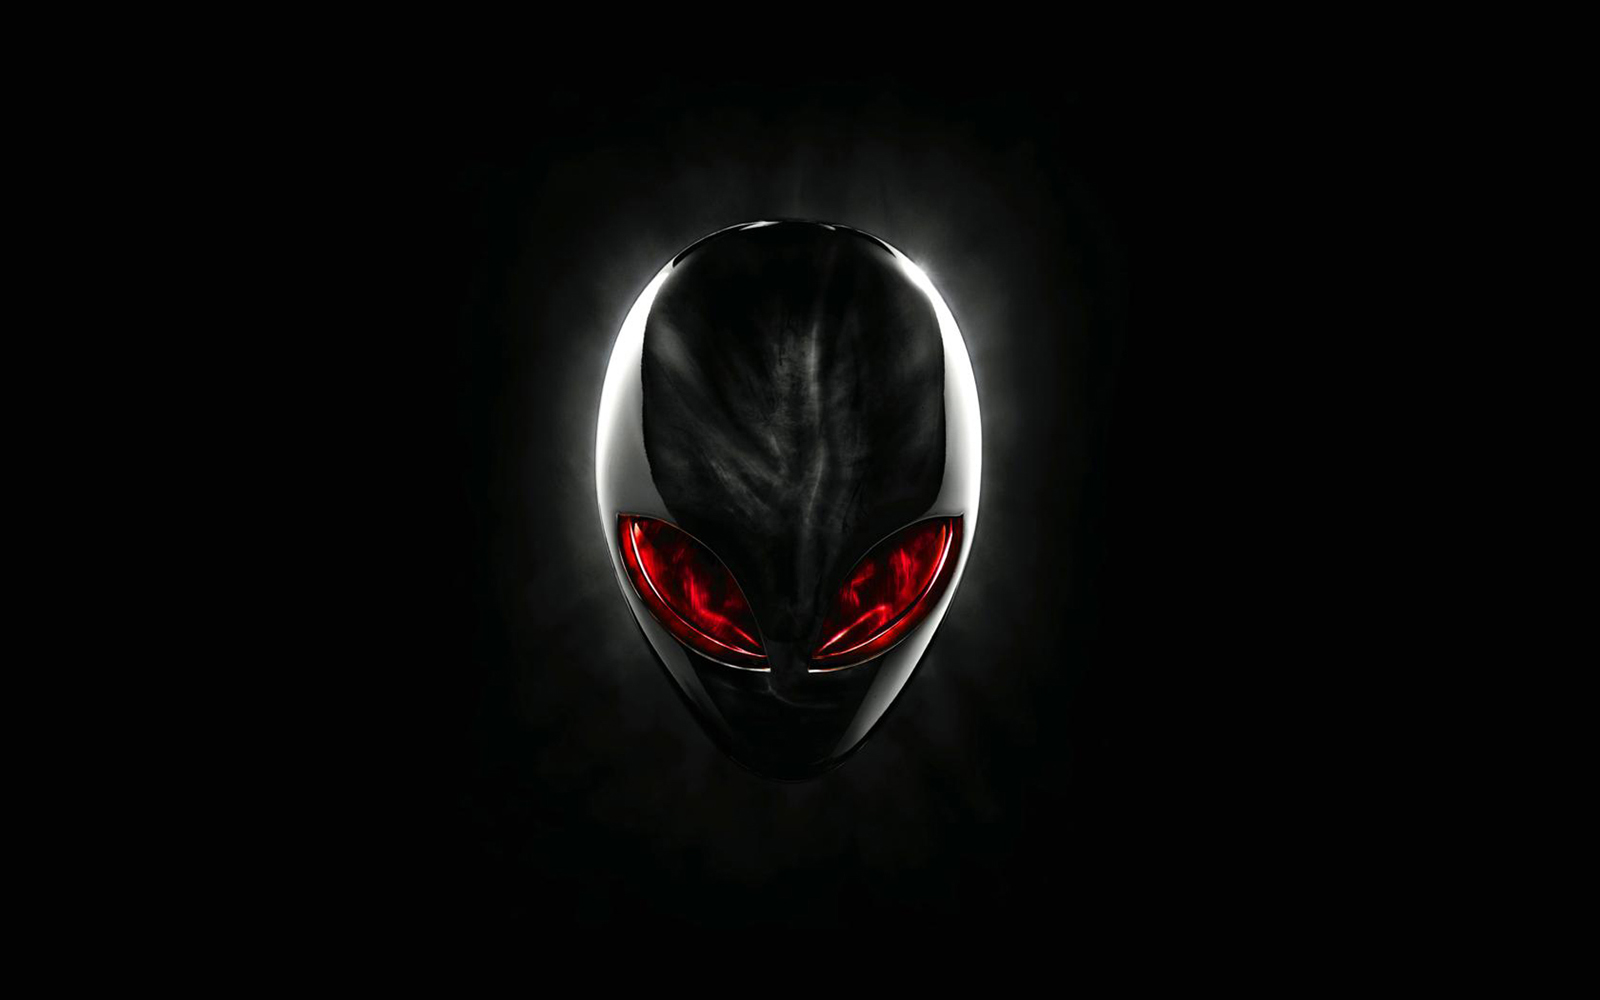 Alienware Logos and HD Wallpapers Download Wallpapers in HD for 1600x1000